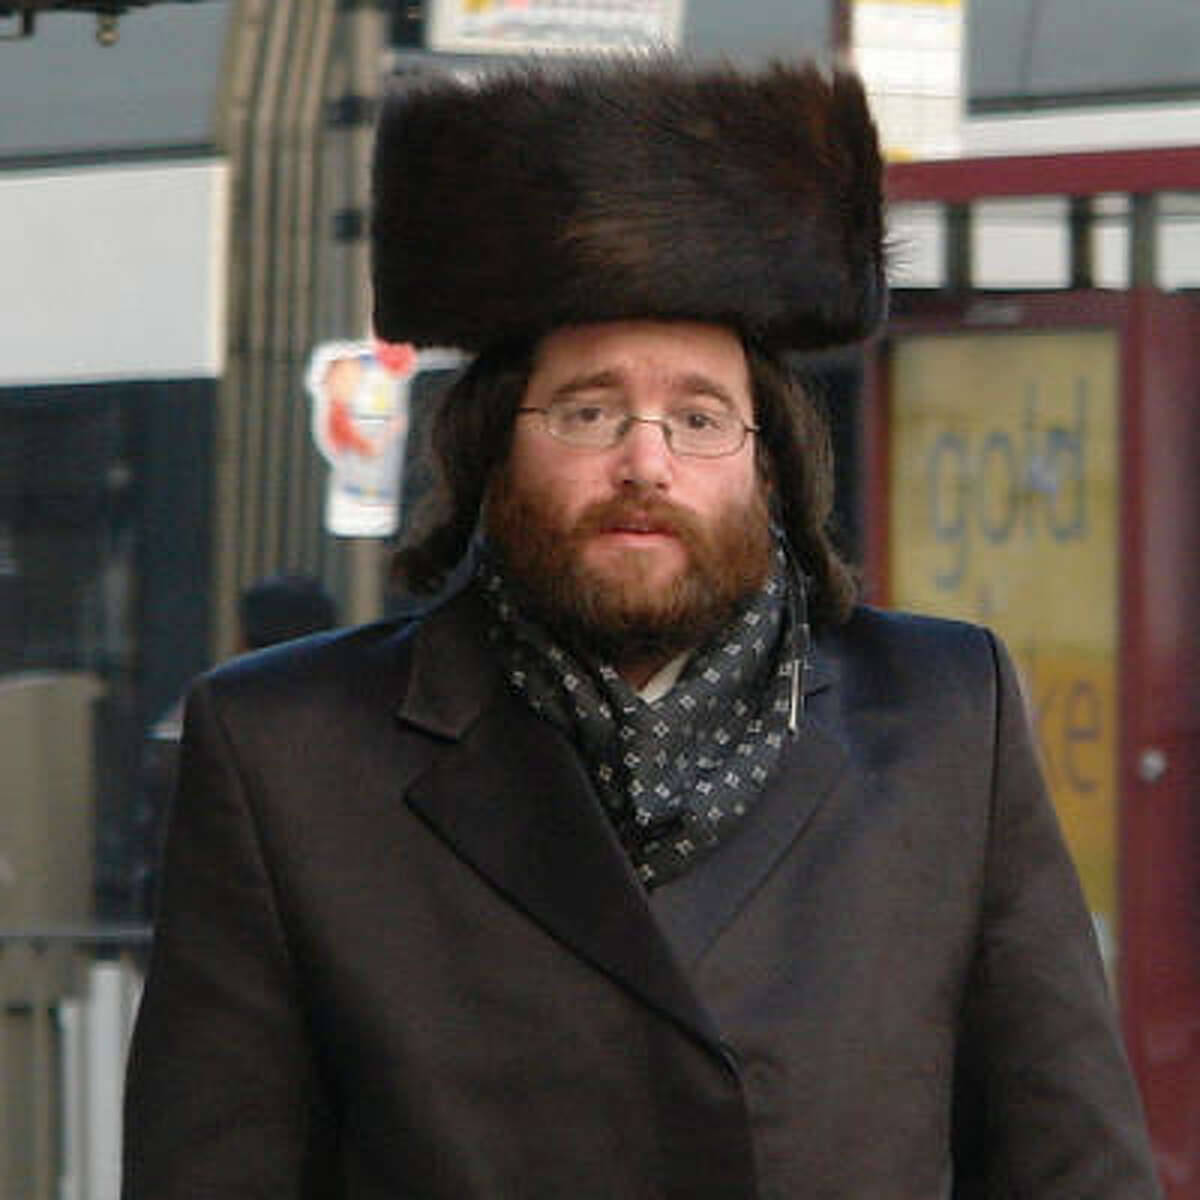 JudaismThe origin of the beard and instructions on how to wear them for Jews comes from Leviticus, which states not to